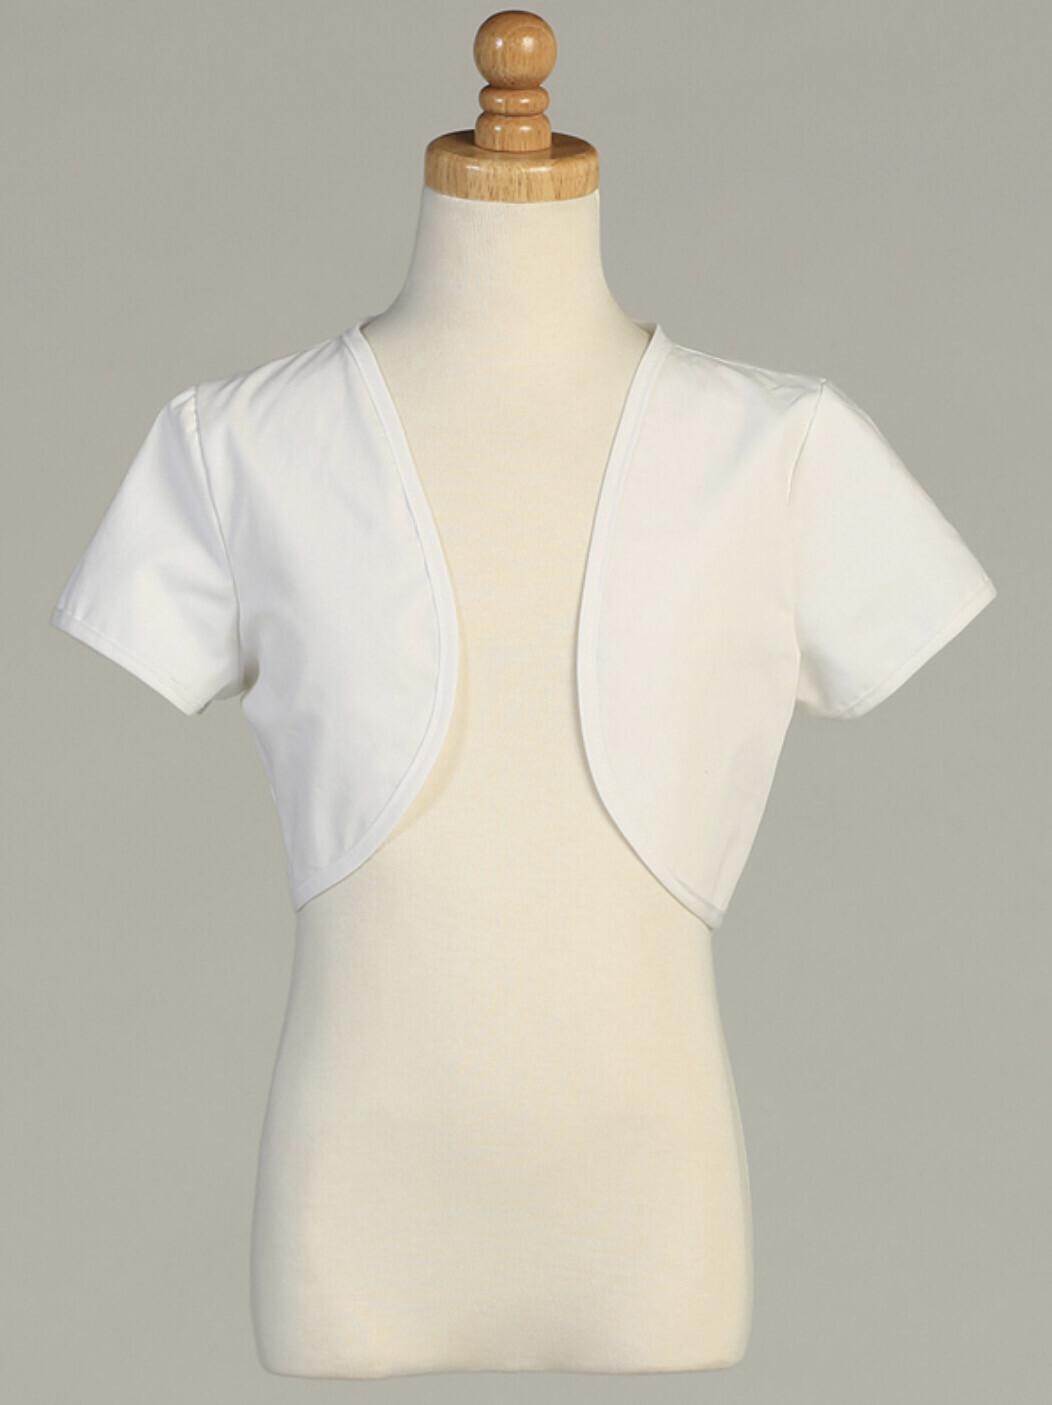 White Bolero Short Sleeves